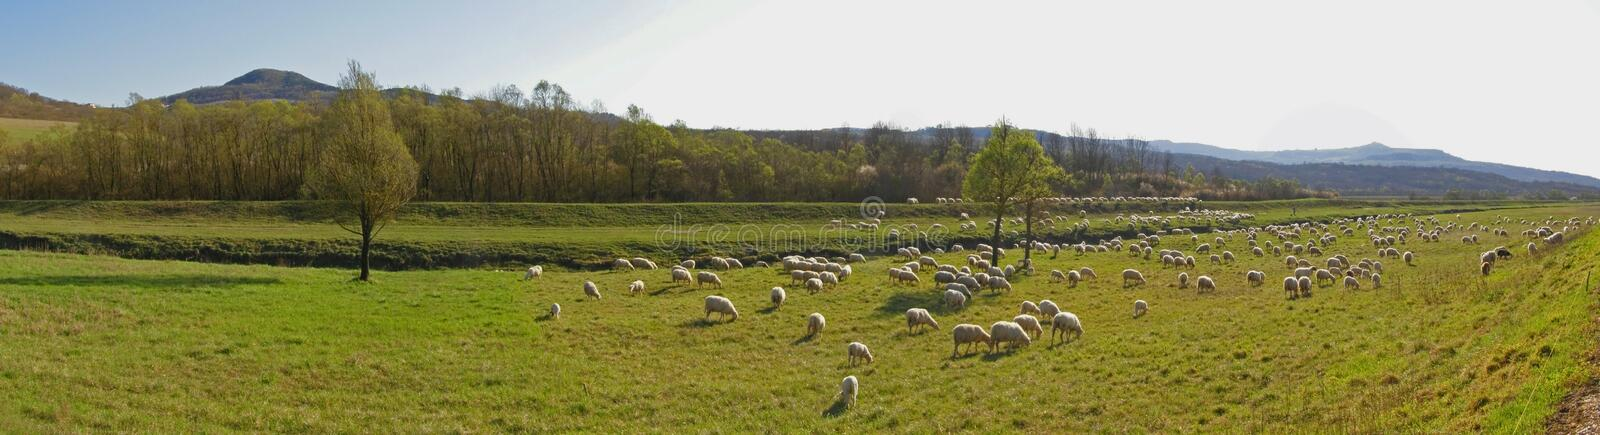 Countryside with sheep flock - panorama royalty free stock images